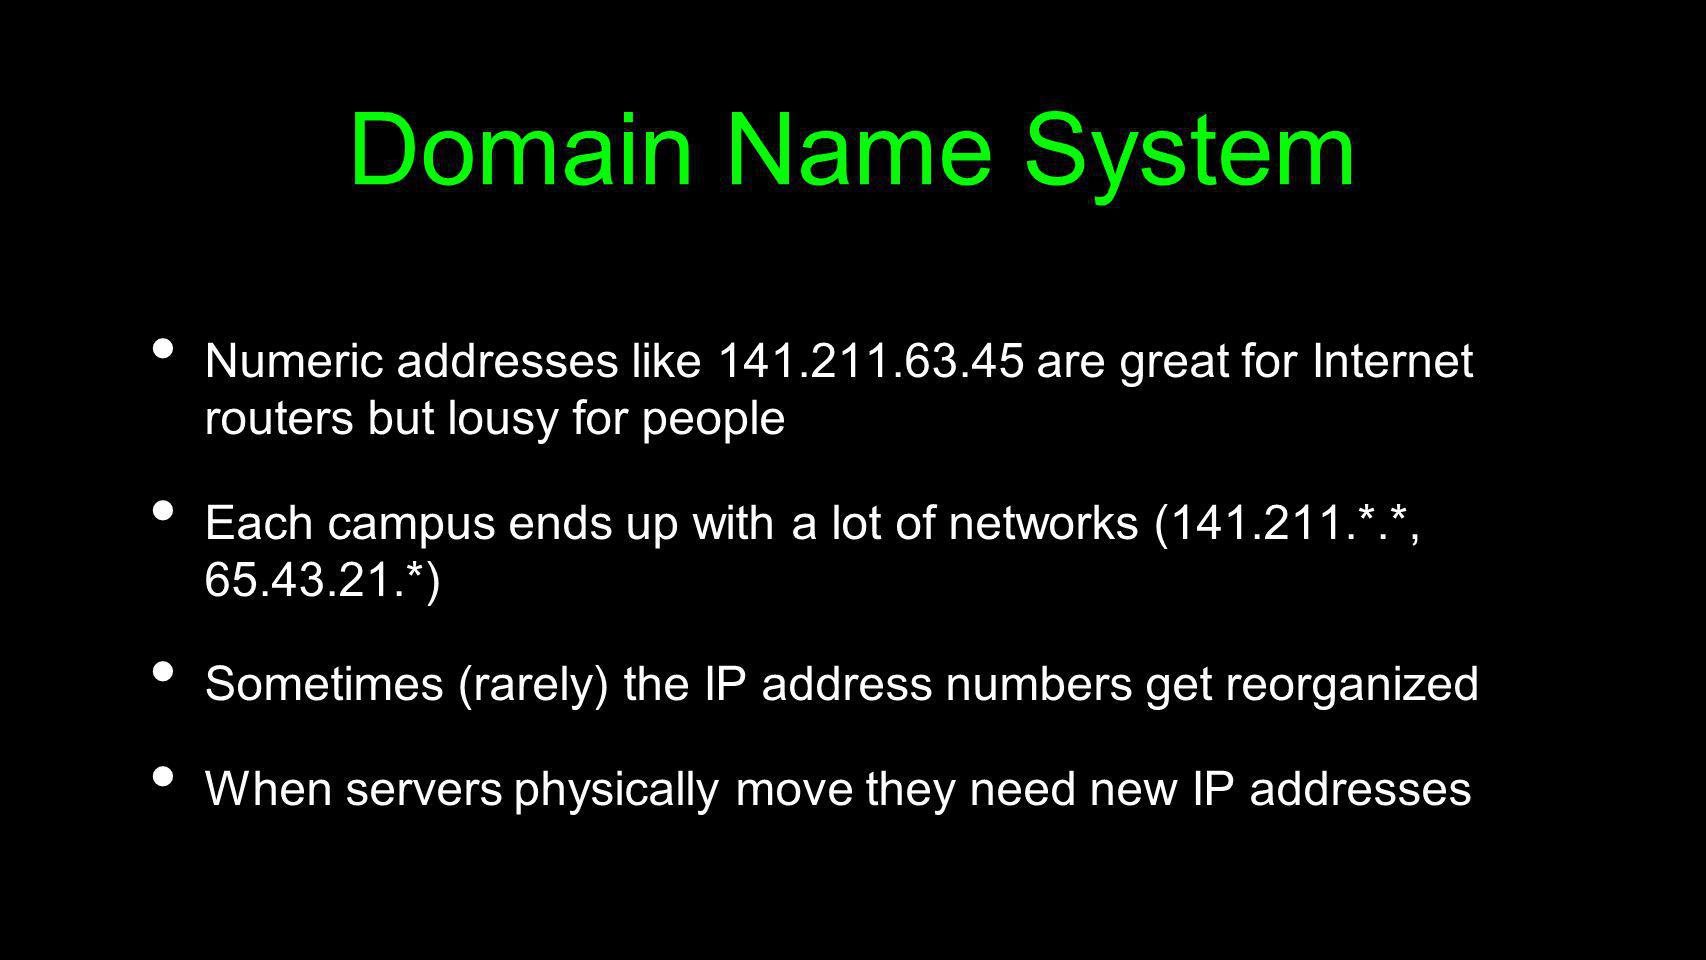 Domain Name SystemNumeric addresses like 141.211.63.45 are great for Internet routers but lousy for people.